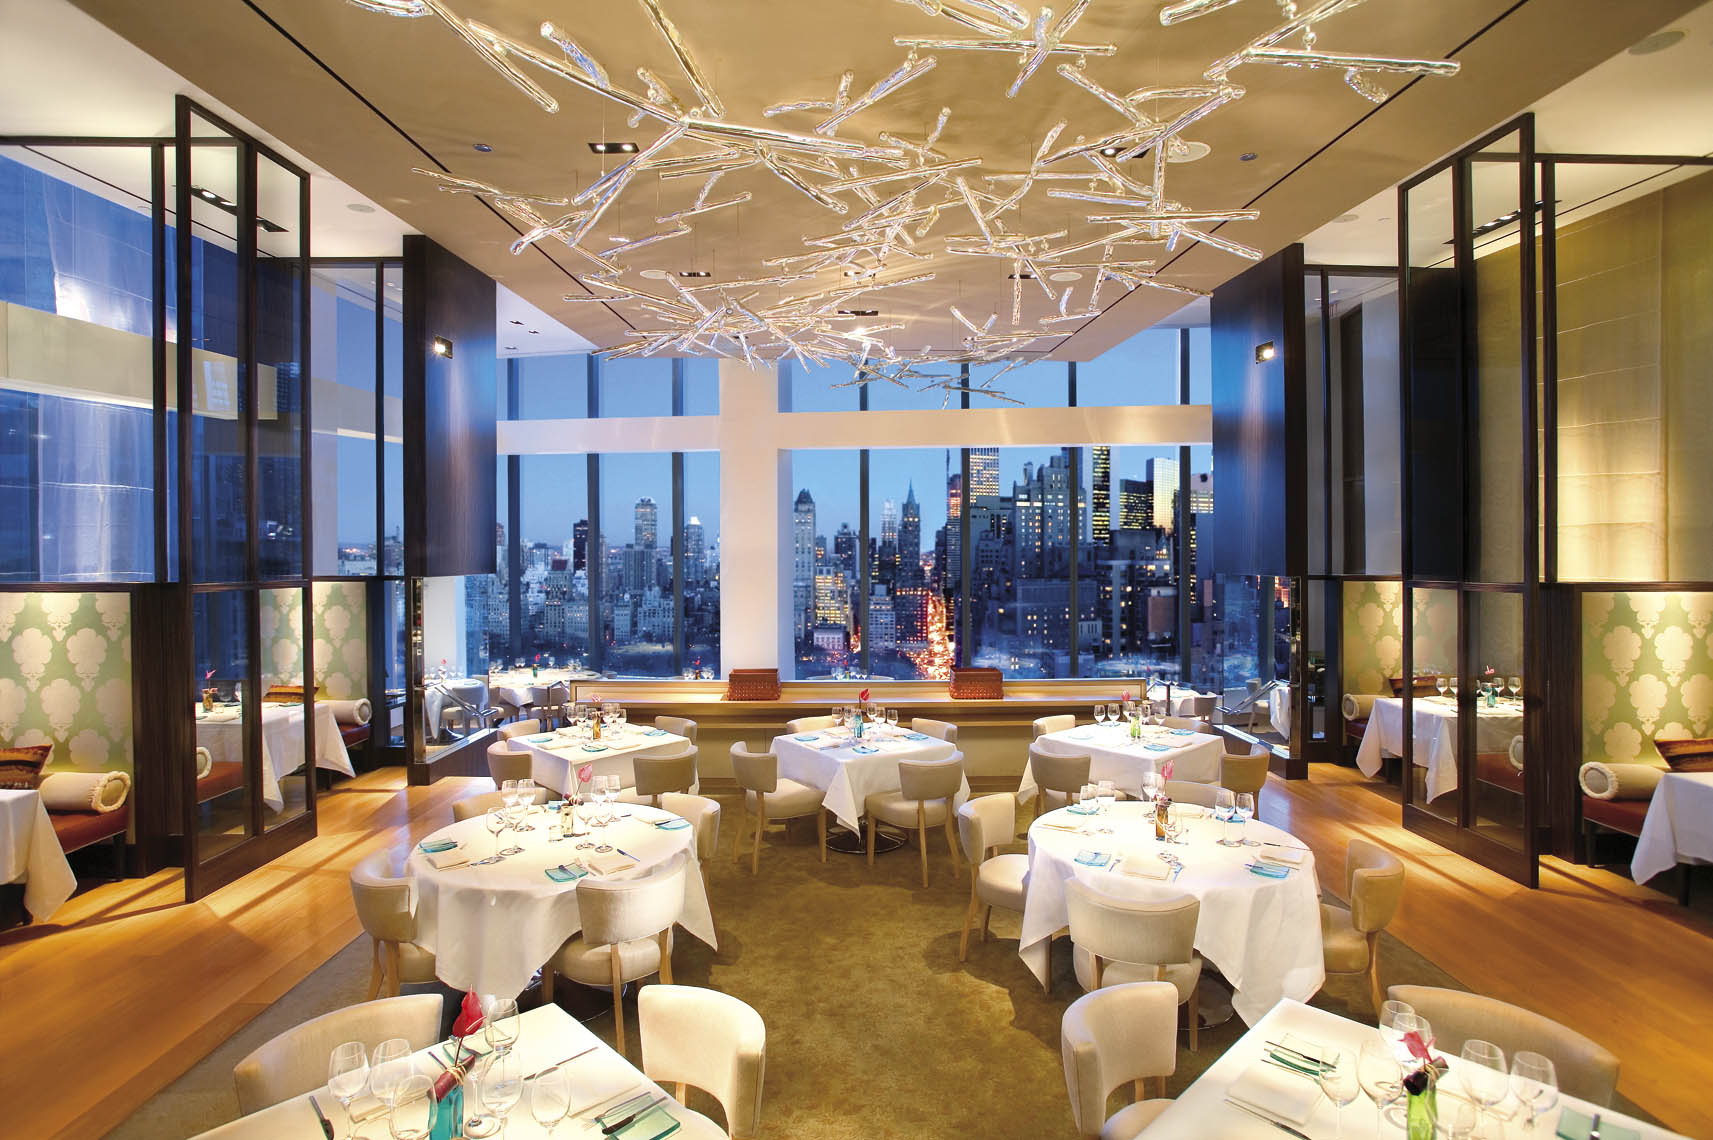 TOP 10 Best-Looking Restaurants in New York restaurants TOP 10 Best-Looking Restaurants in New York asiate